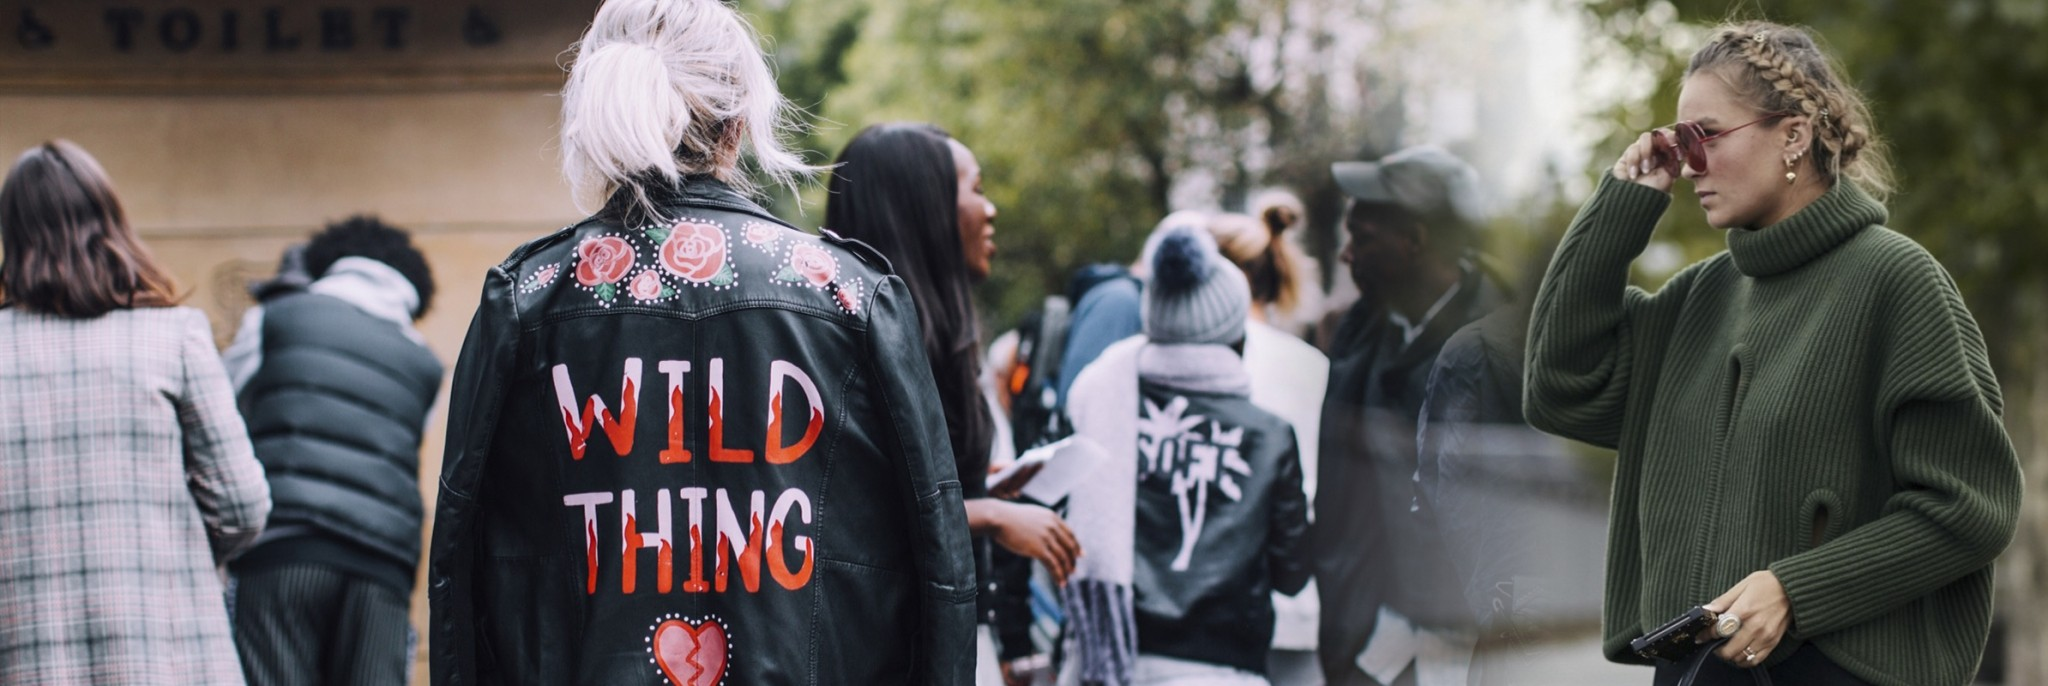 63 LFW Street Style Looks to Cop